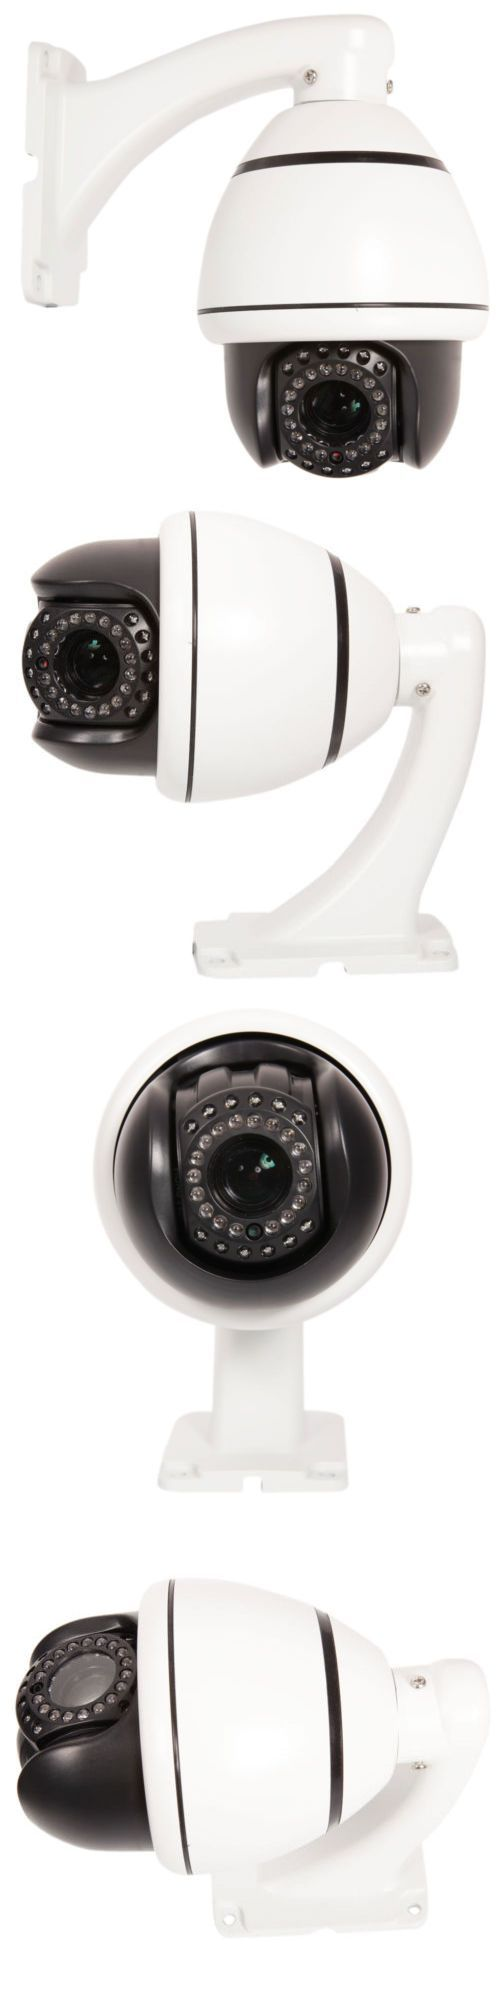 Cool Home Security 2017: Security Cameras: 1200Tvl Hd Sony Cmos 30X Zoom Ptz Ir Dome Home Cctv Security C... Home Video Security Check more at http://homesecuritymonitoring.top/blog/review/home-security-2017-security-cameras-1200tvl-hd-sony-cmos-30x-zoom-ptz-ir-dome-home-cctv-security-c-home-video-security/